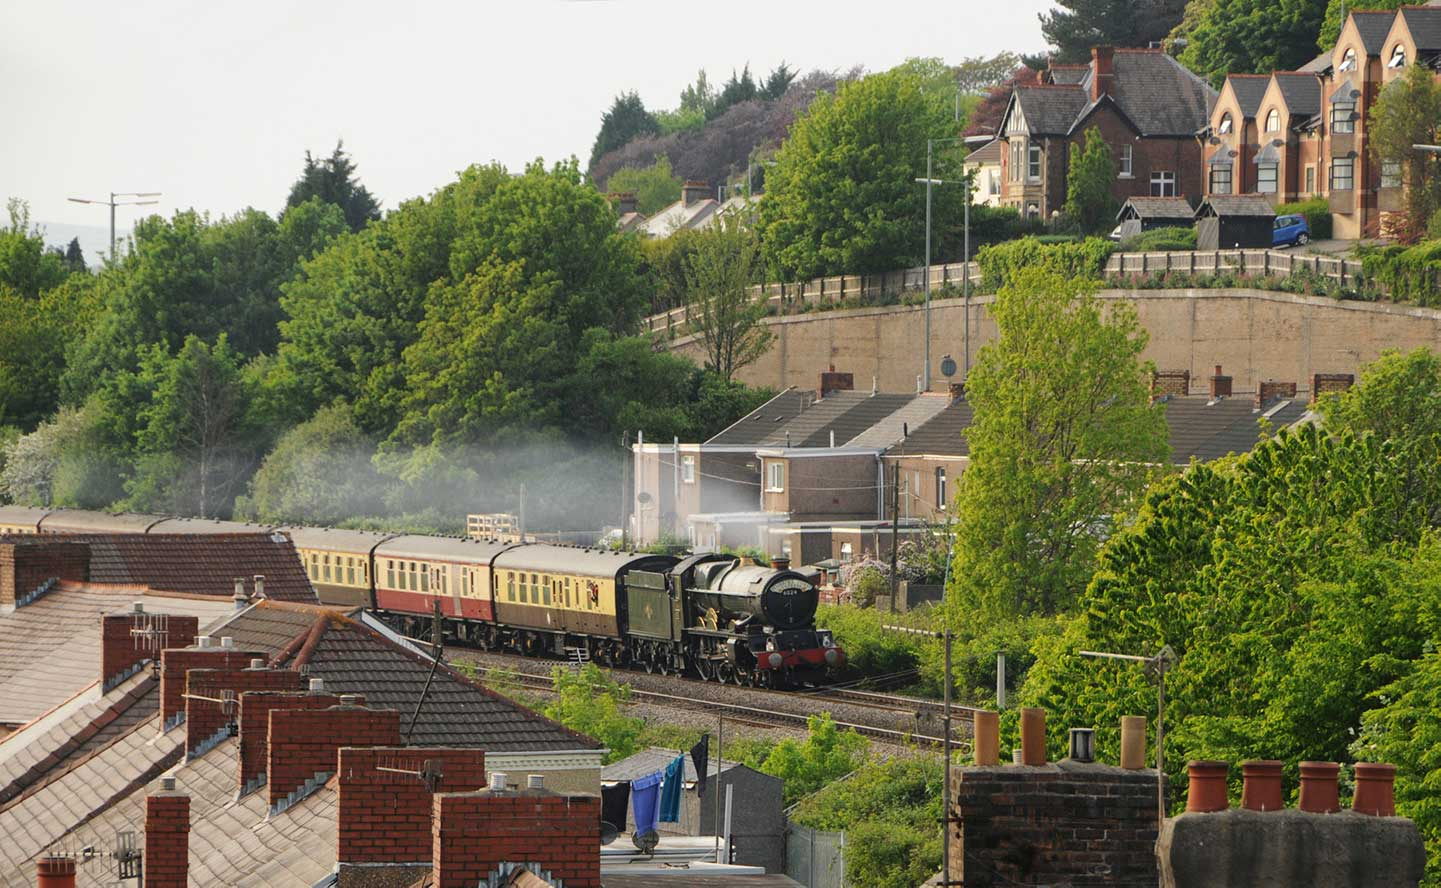 No. 6024 amongst the houses in Port Talbot, 1 May 2011. © Robin Coombes